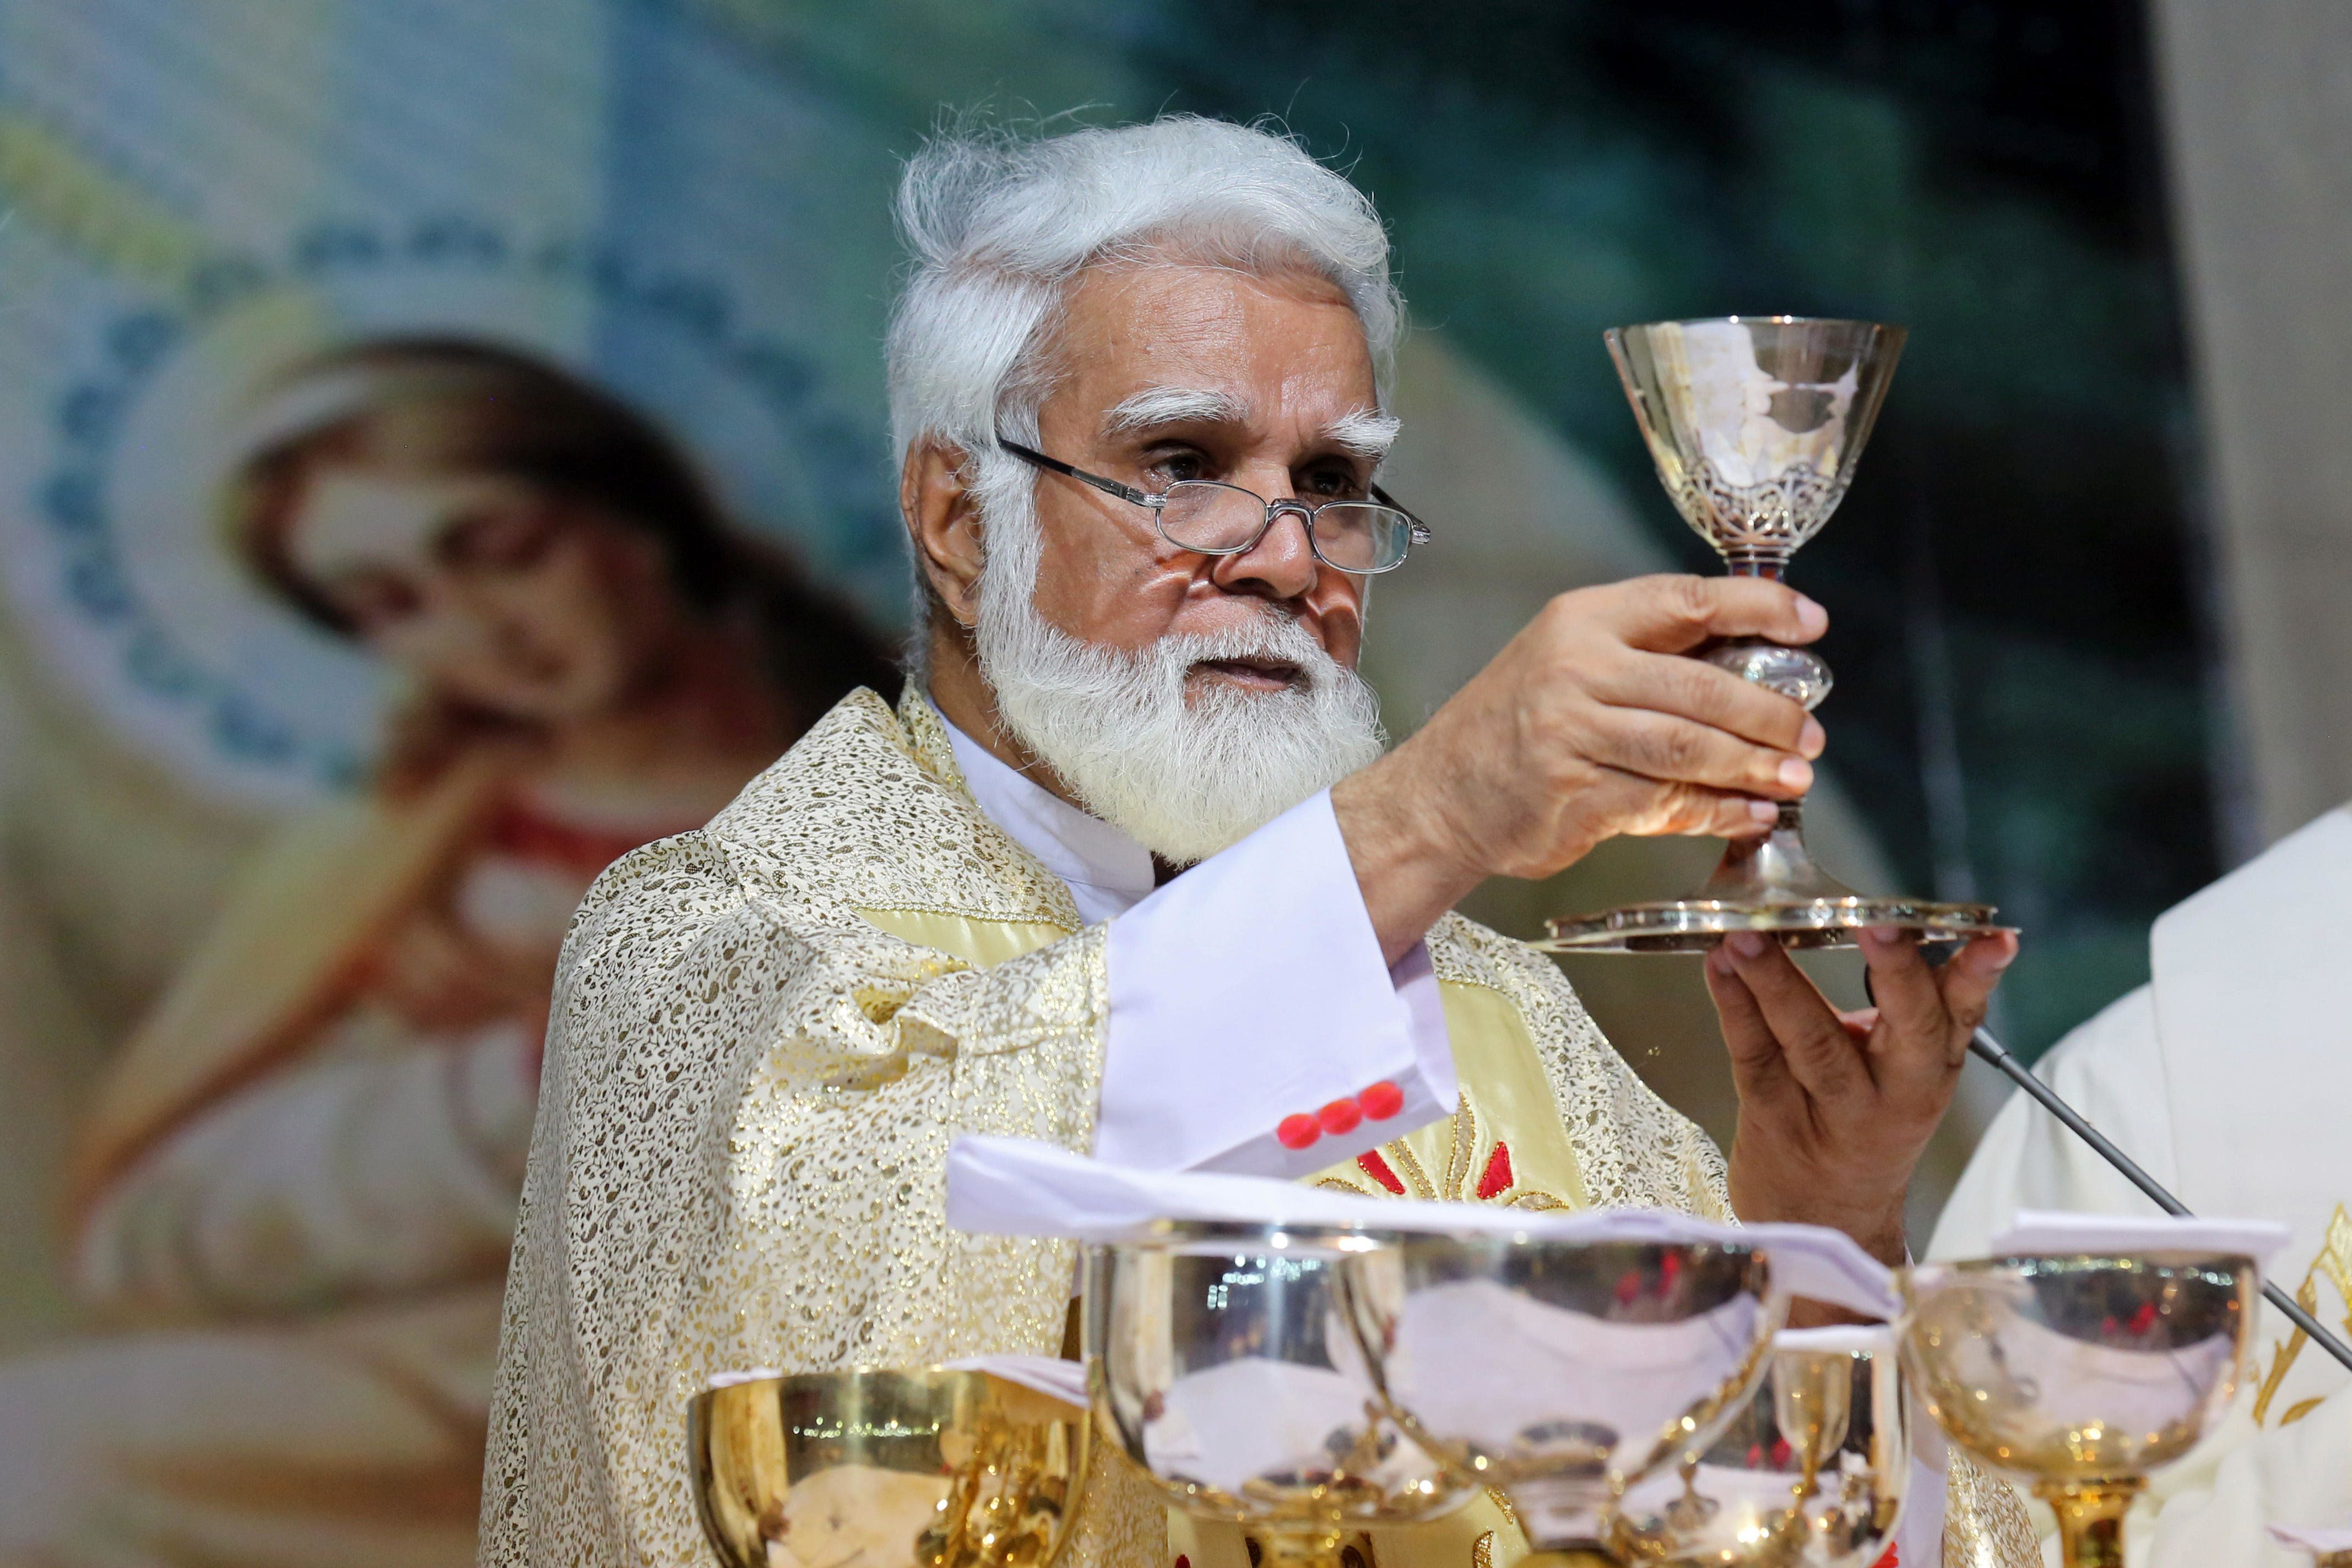 E8G78N JOSEPH COUTTS, Archbishop of the roman catholic Diocese of Karachi, Pakistan. Raising the goblet with wine/blood during the mass